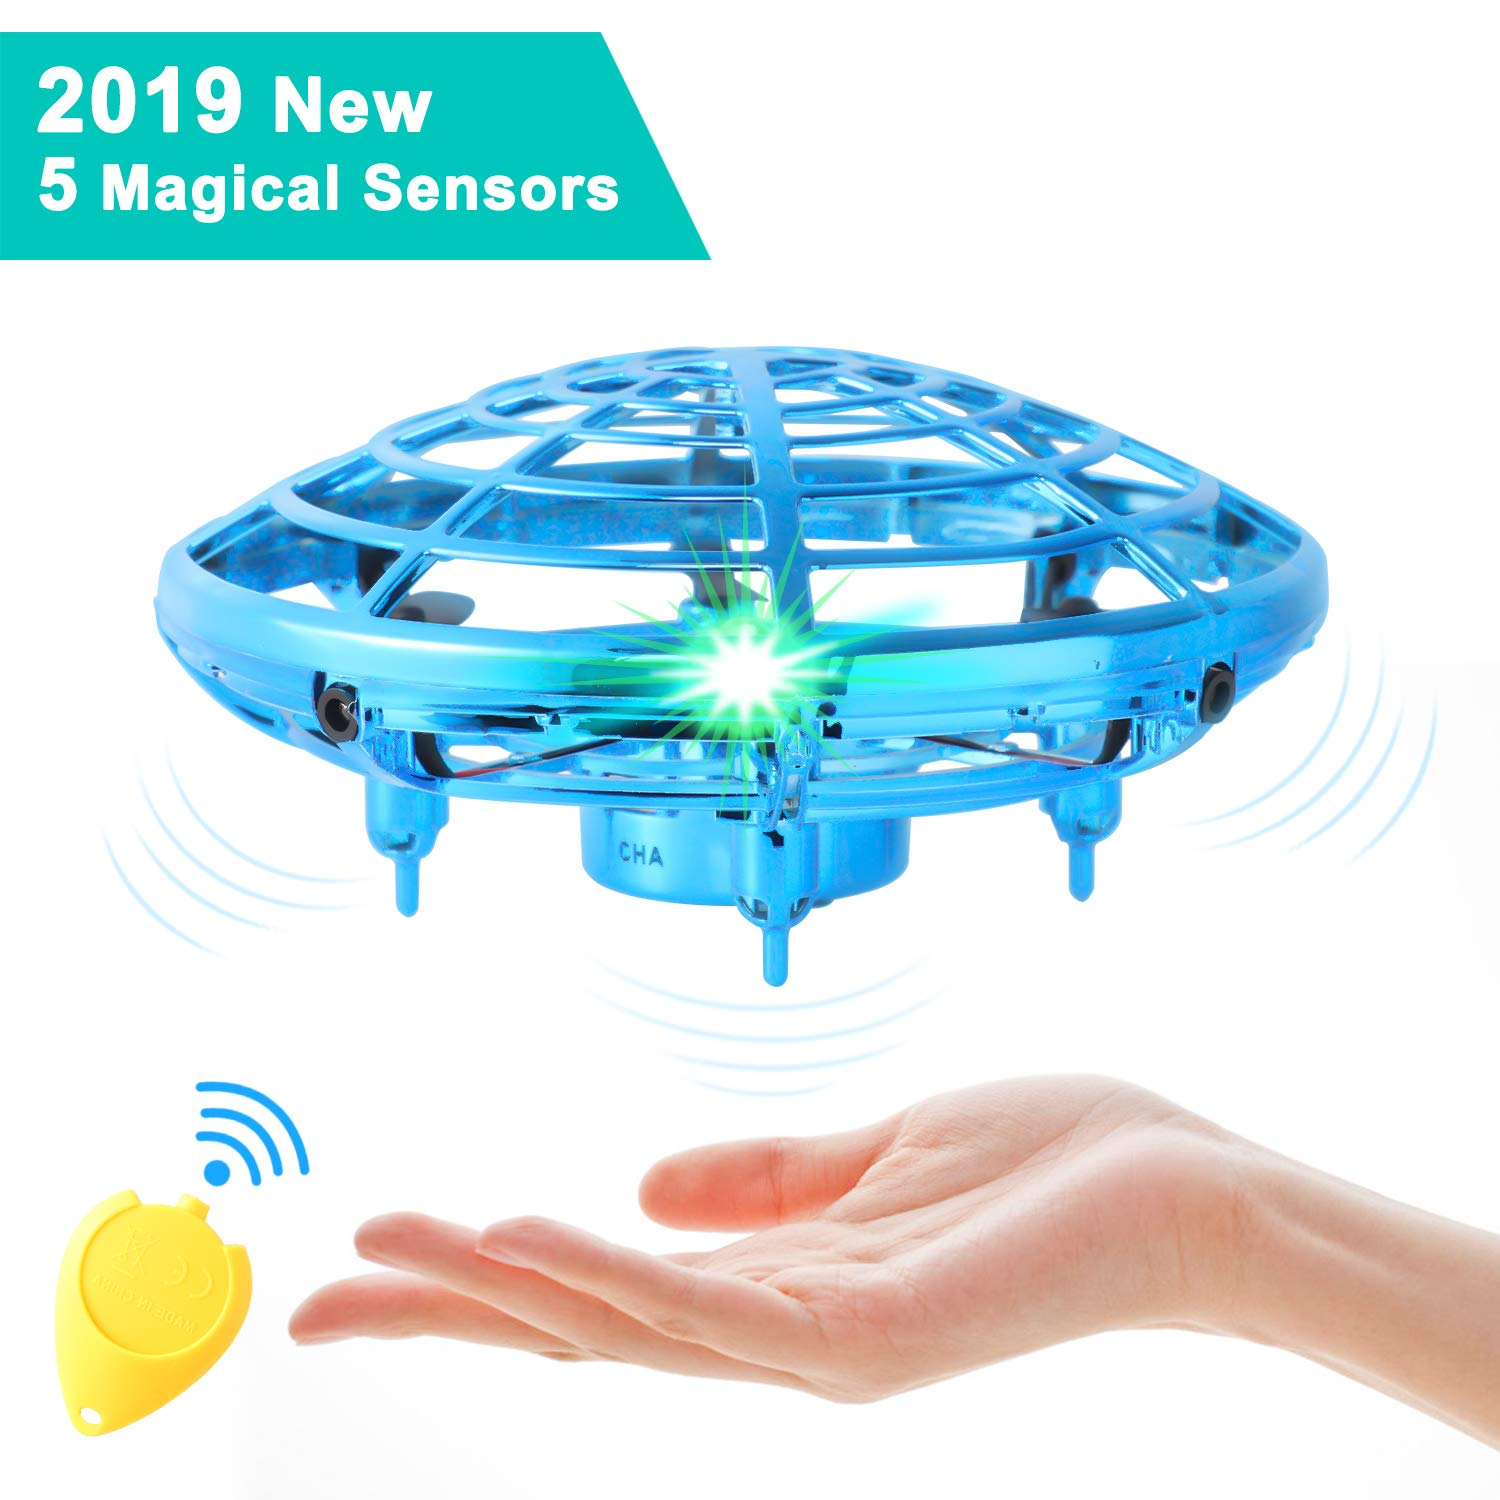 Flying Toys for Kids,Mini UFO Drone,Hand Operated Drones with 5 Sensors and 2 Speed,Easy Indoor Outdoor Flying Ball Drone Toys,Great Flying Drone Gift for Boys/Girls,USB Charging and Remote Controller by semai